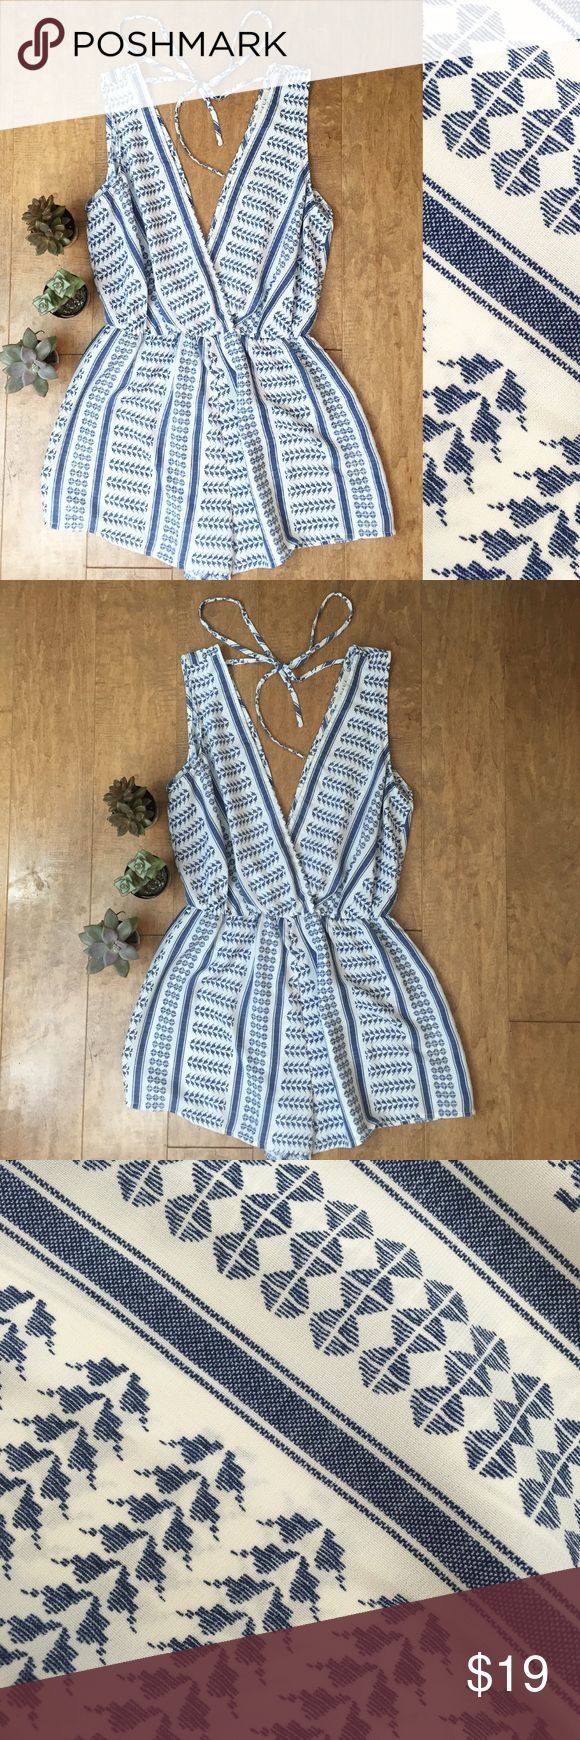 Boho Aztec Print Romper Romper is blue and white! Gained weight after I purchased it, so I wish I could wear it! Brand new with tags, in perfect condition. Dresses